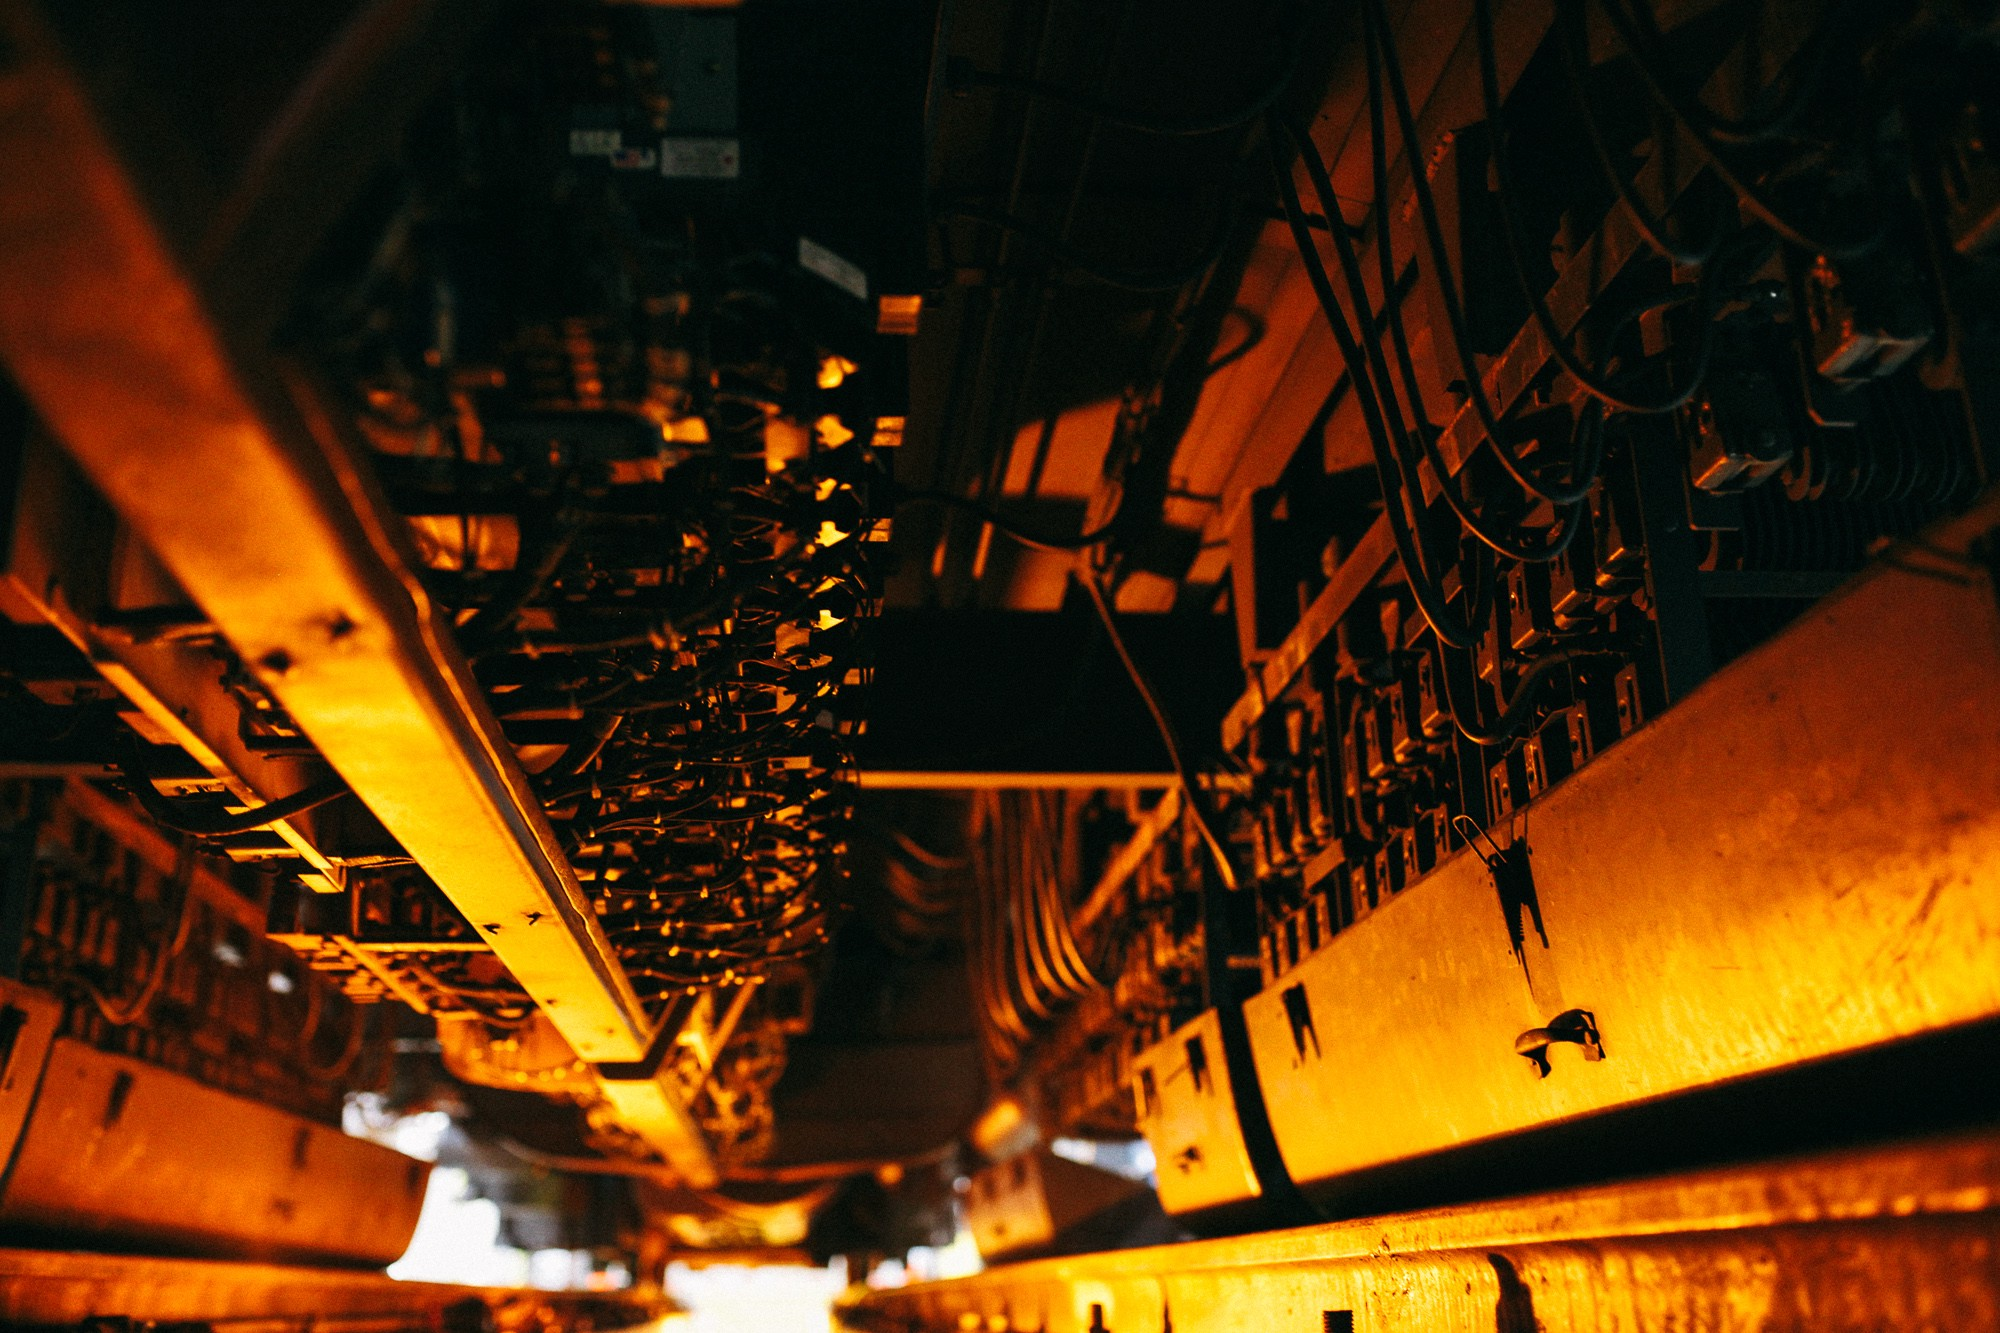 The underbelly of a newer Metra car, a complex system of brakes and compressors.